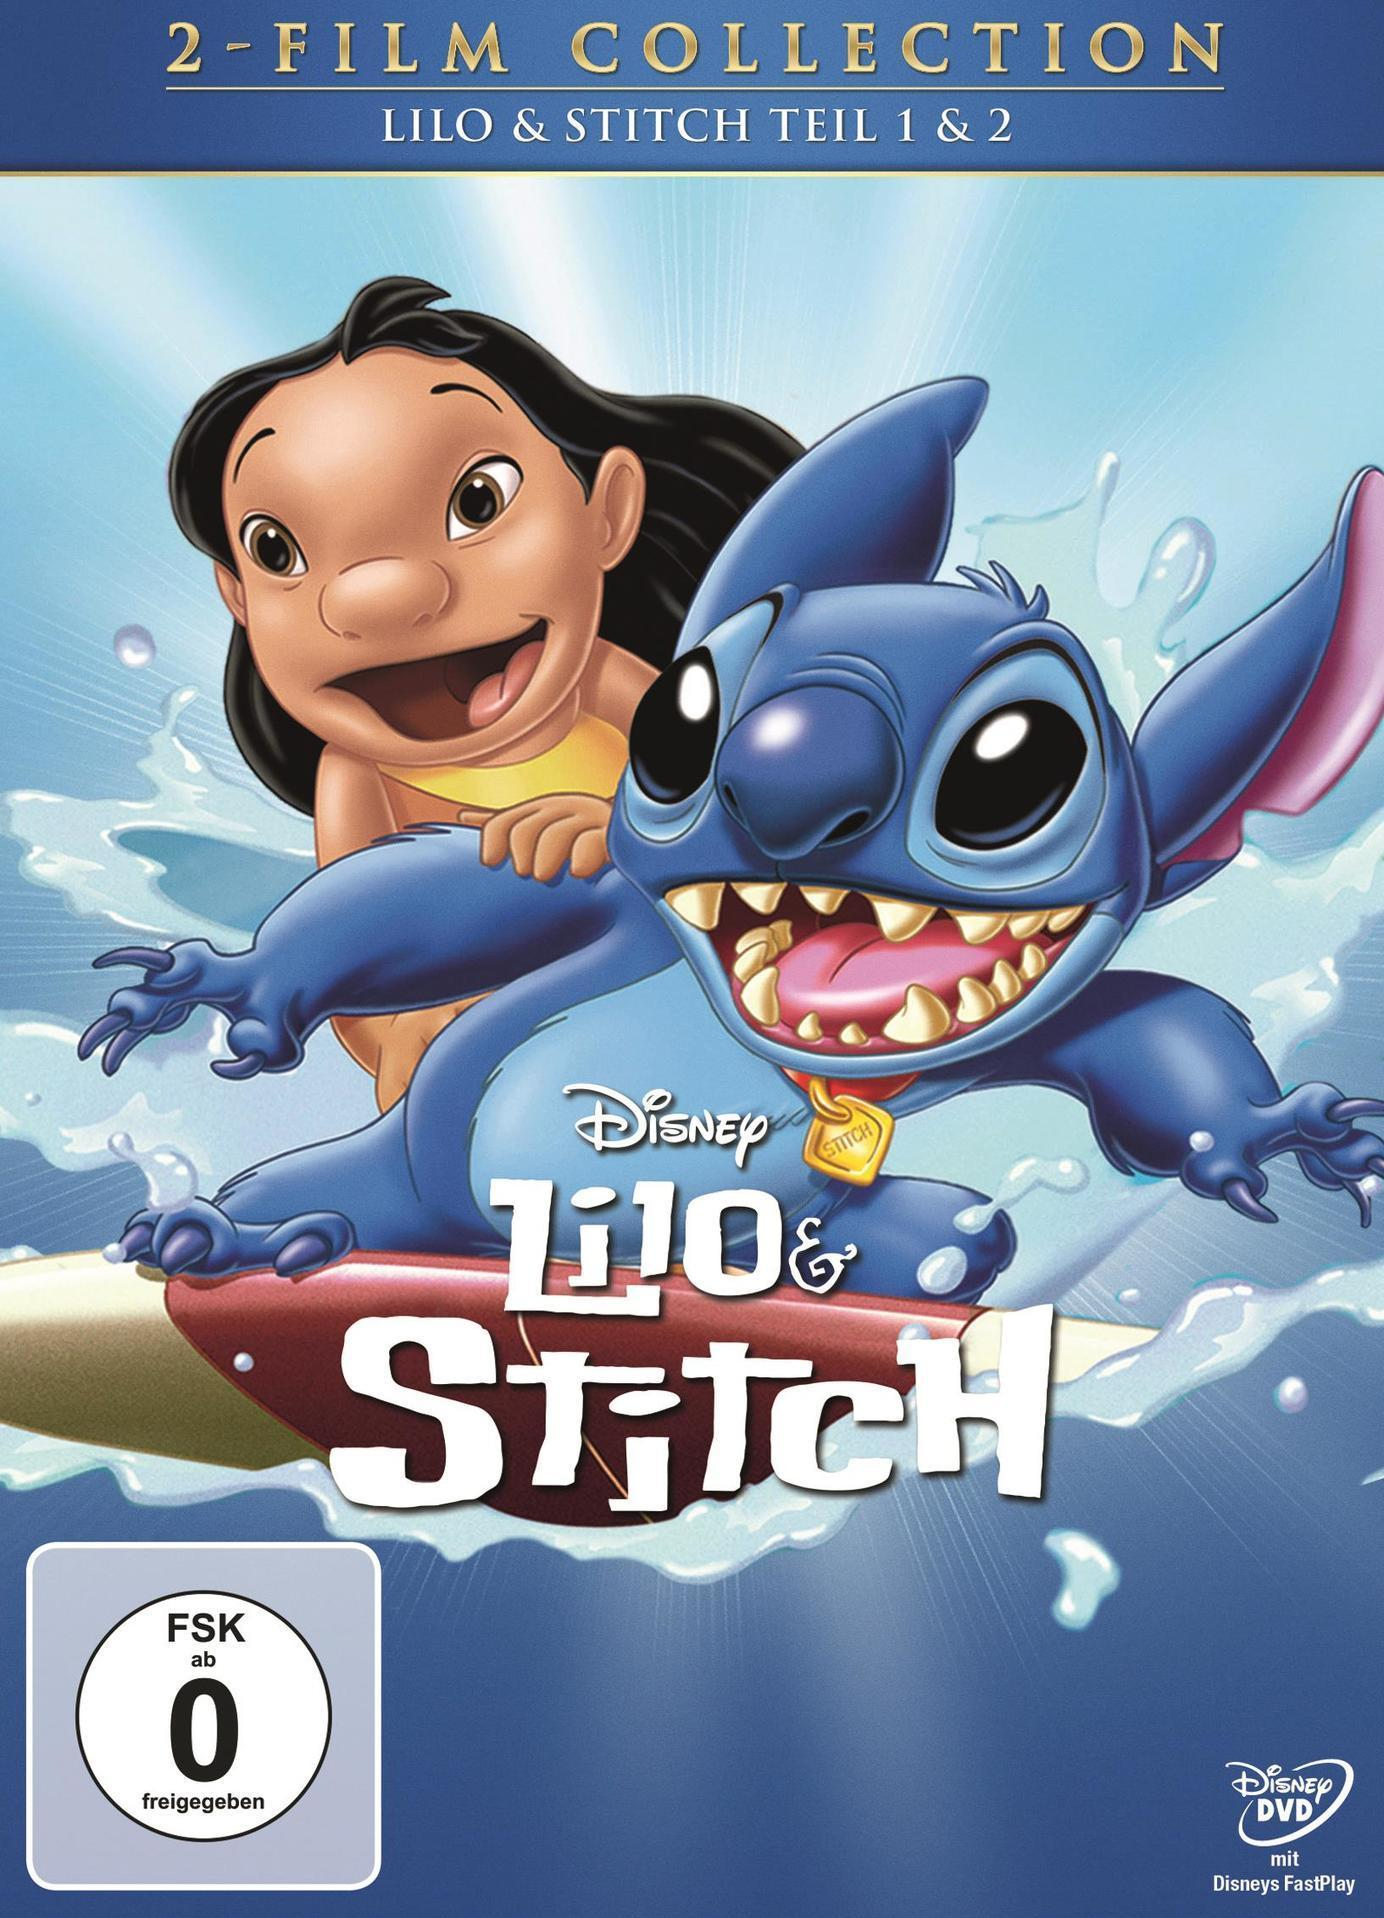 Lilo & Stitch - Movie Collection (DVD) für 19,99 Euro